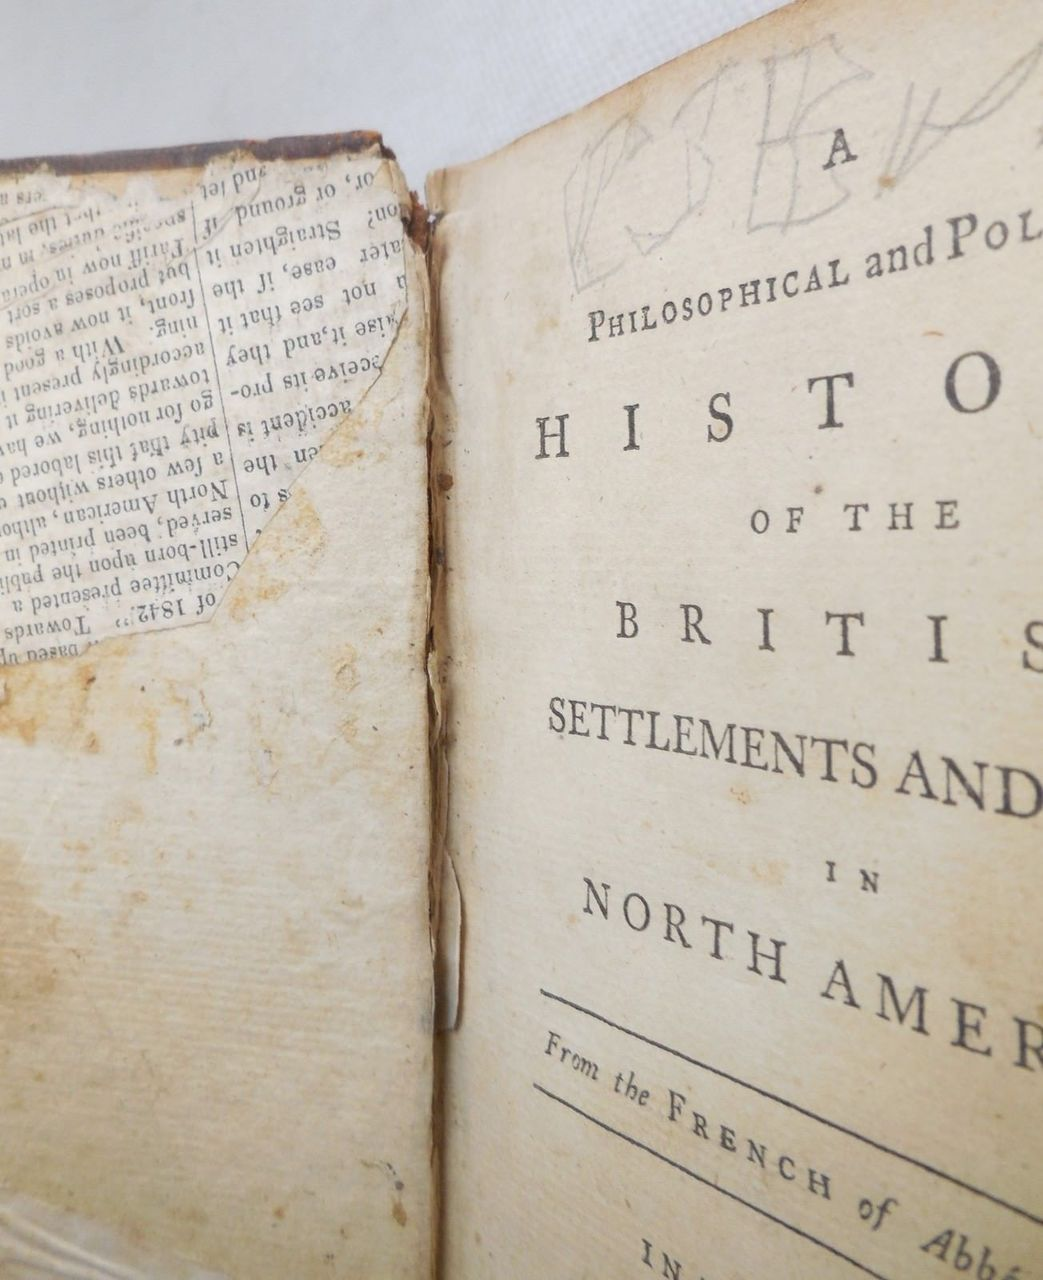 A PHILOSOPHICAL AND POLITICAL HISTORY OF THE BRITISH SETTLEMENTS AND TRADE, Vol 1, by Guillaume Thomas Raynal - 1776 [1st Eng Ed]